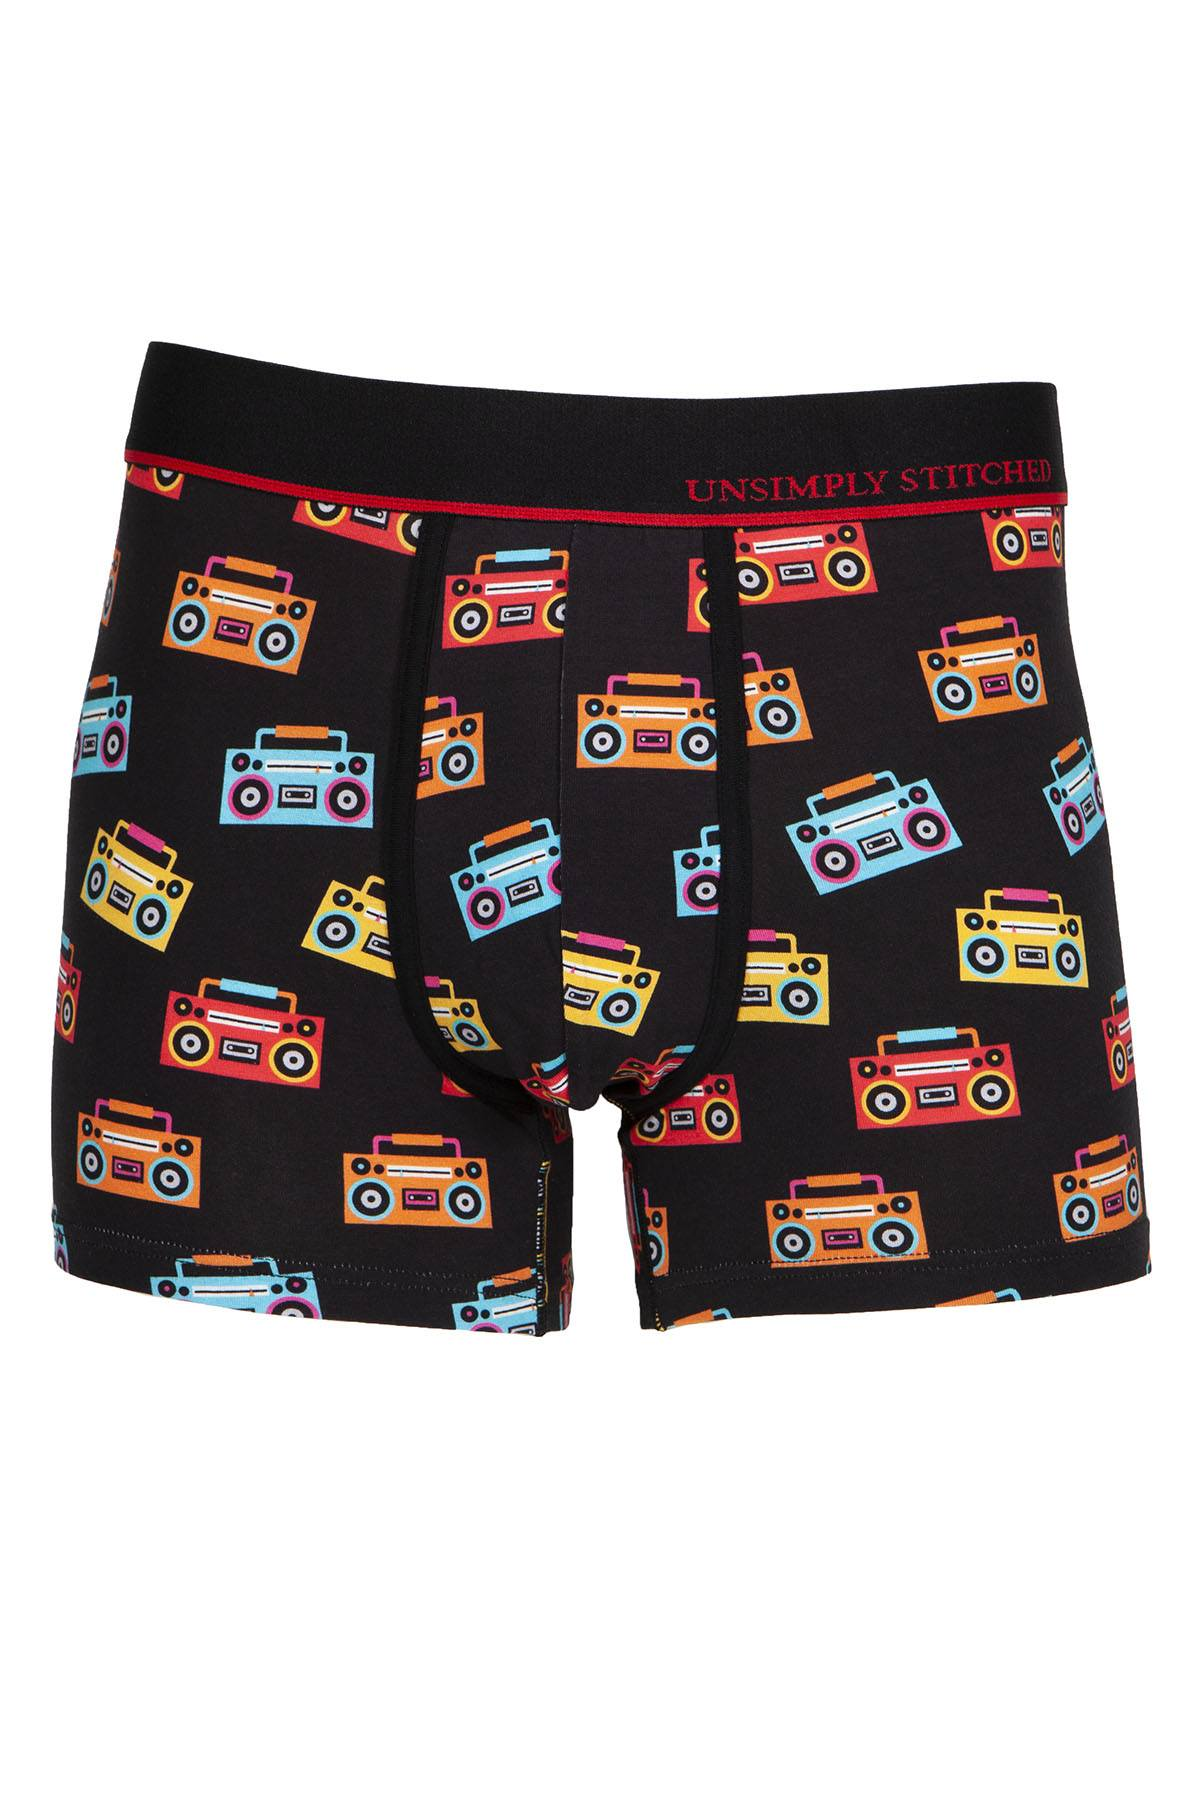 Unsimply Stitched Black Boombox Trunk